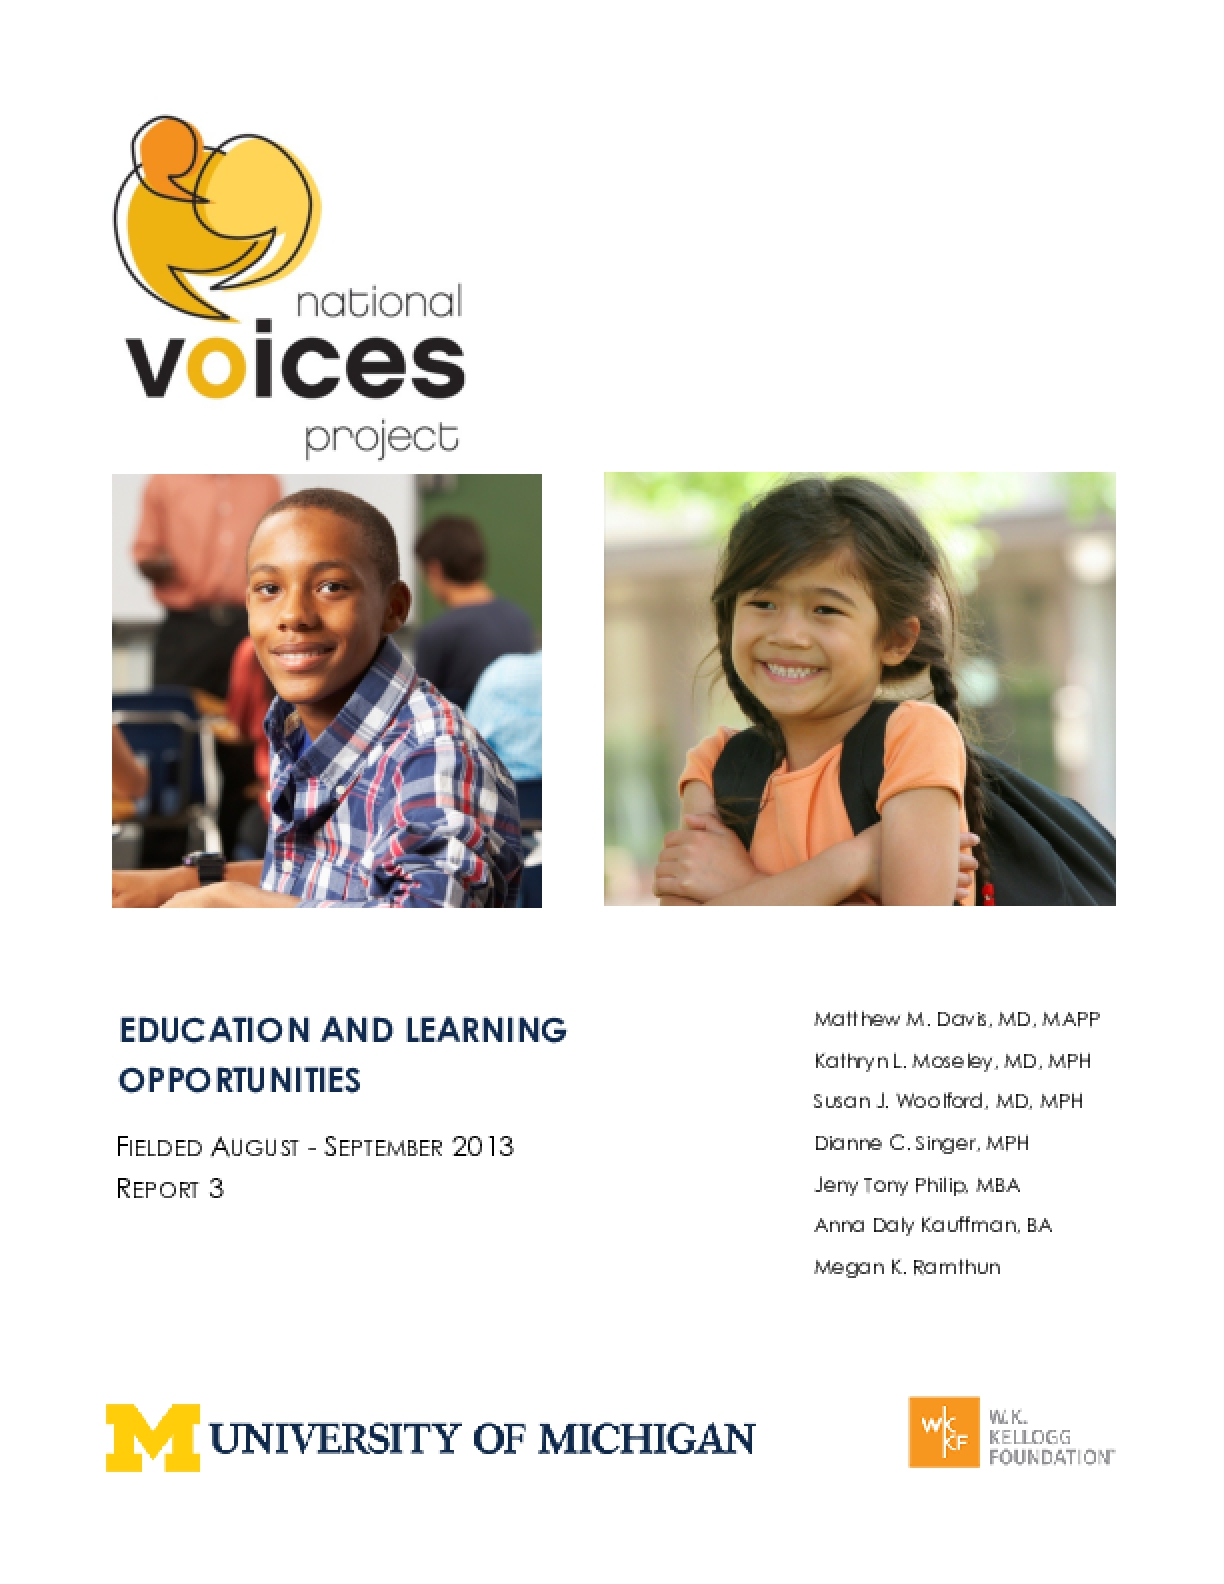 Education and Learning Opportunities (NVP 2013, Report 3)